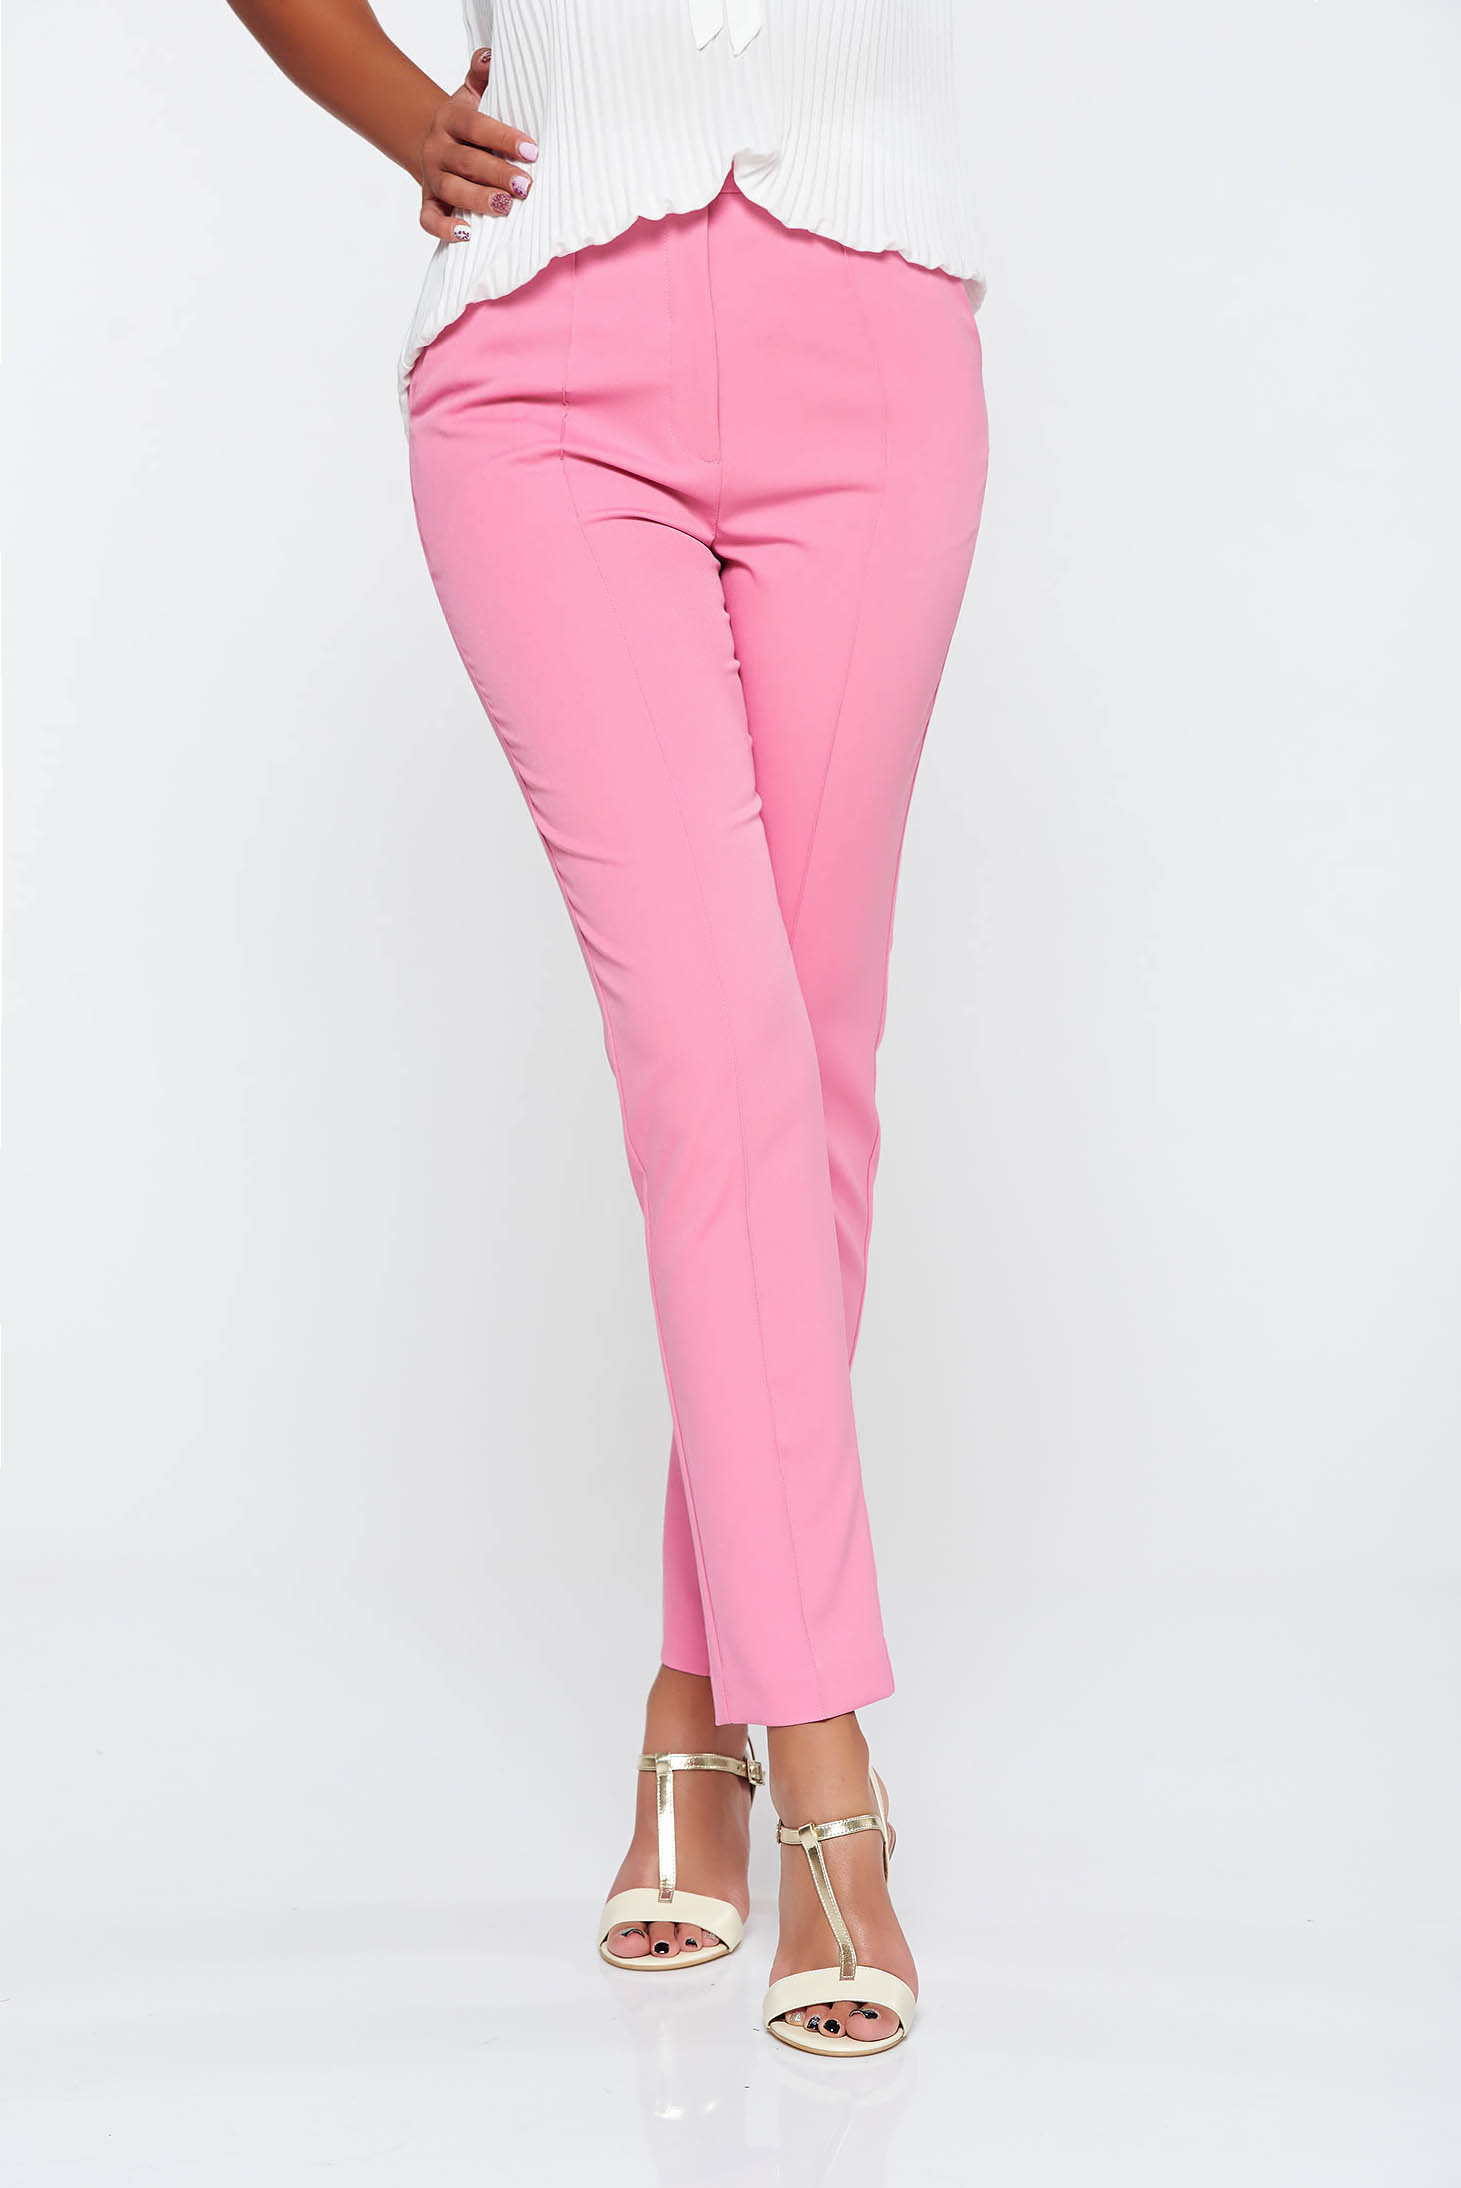 Elegant long conical pink trousers with pockets with medium waist slightly elastic fabric